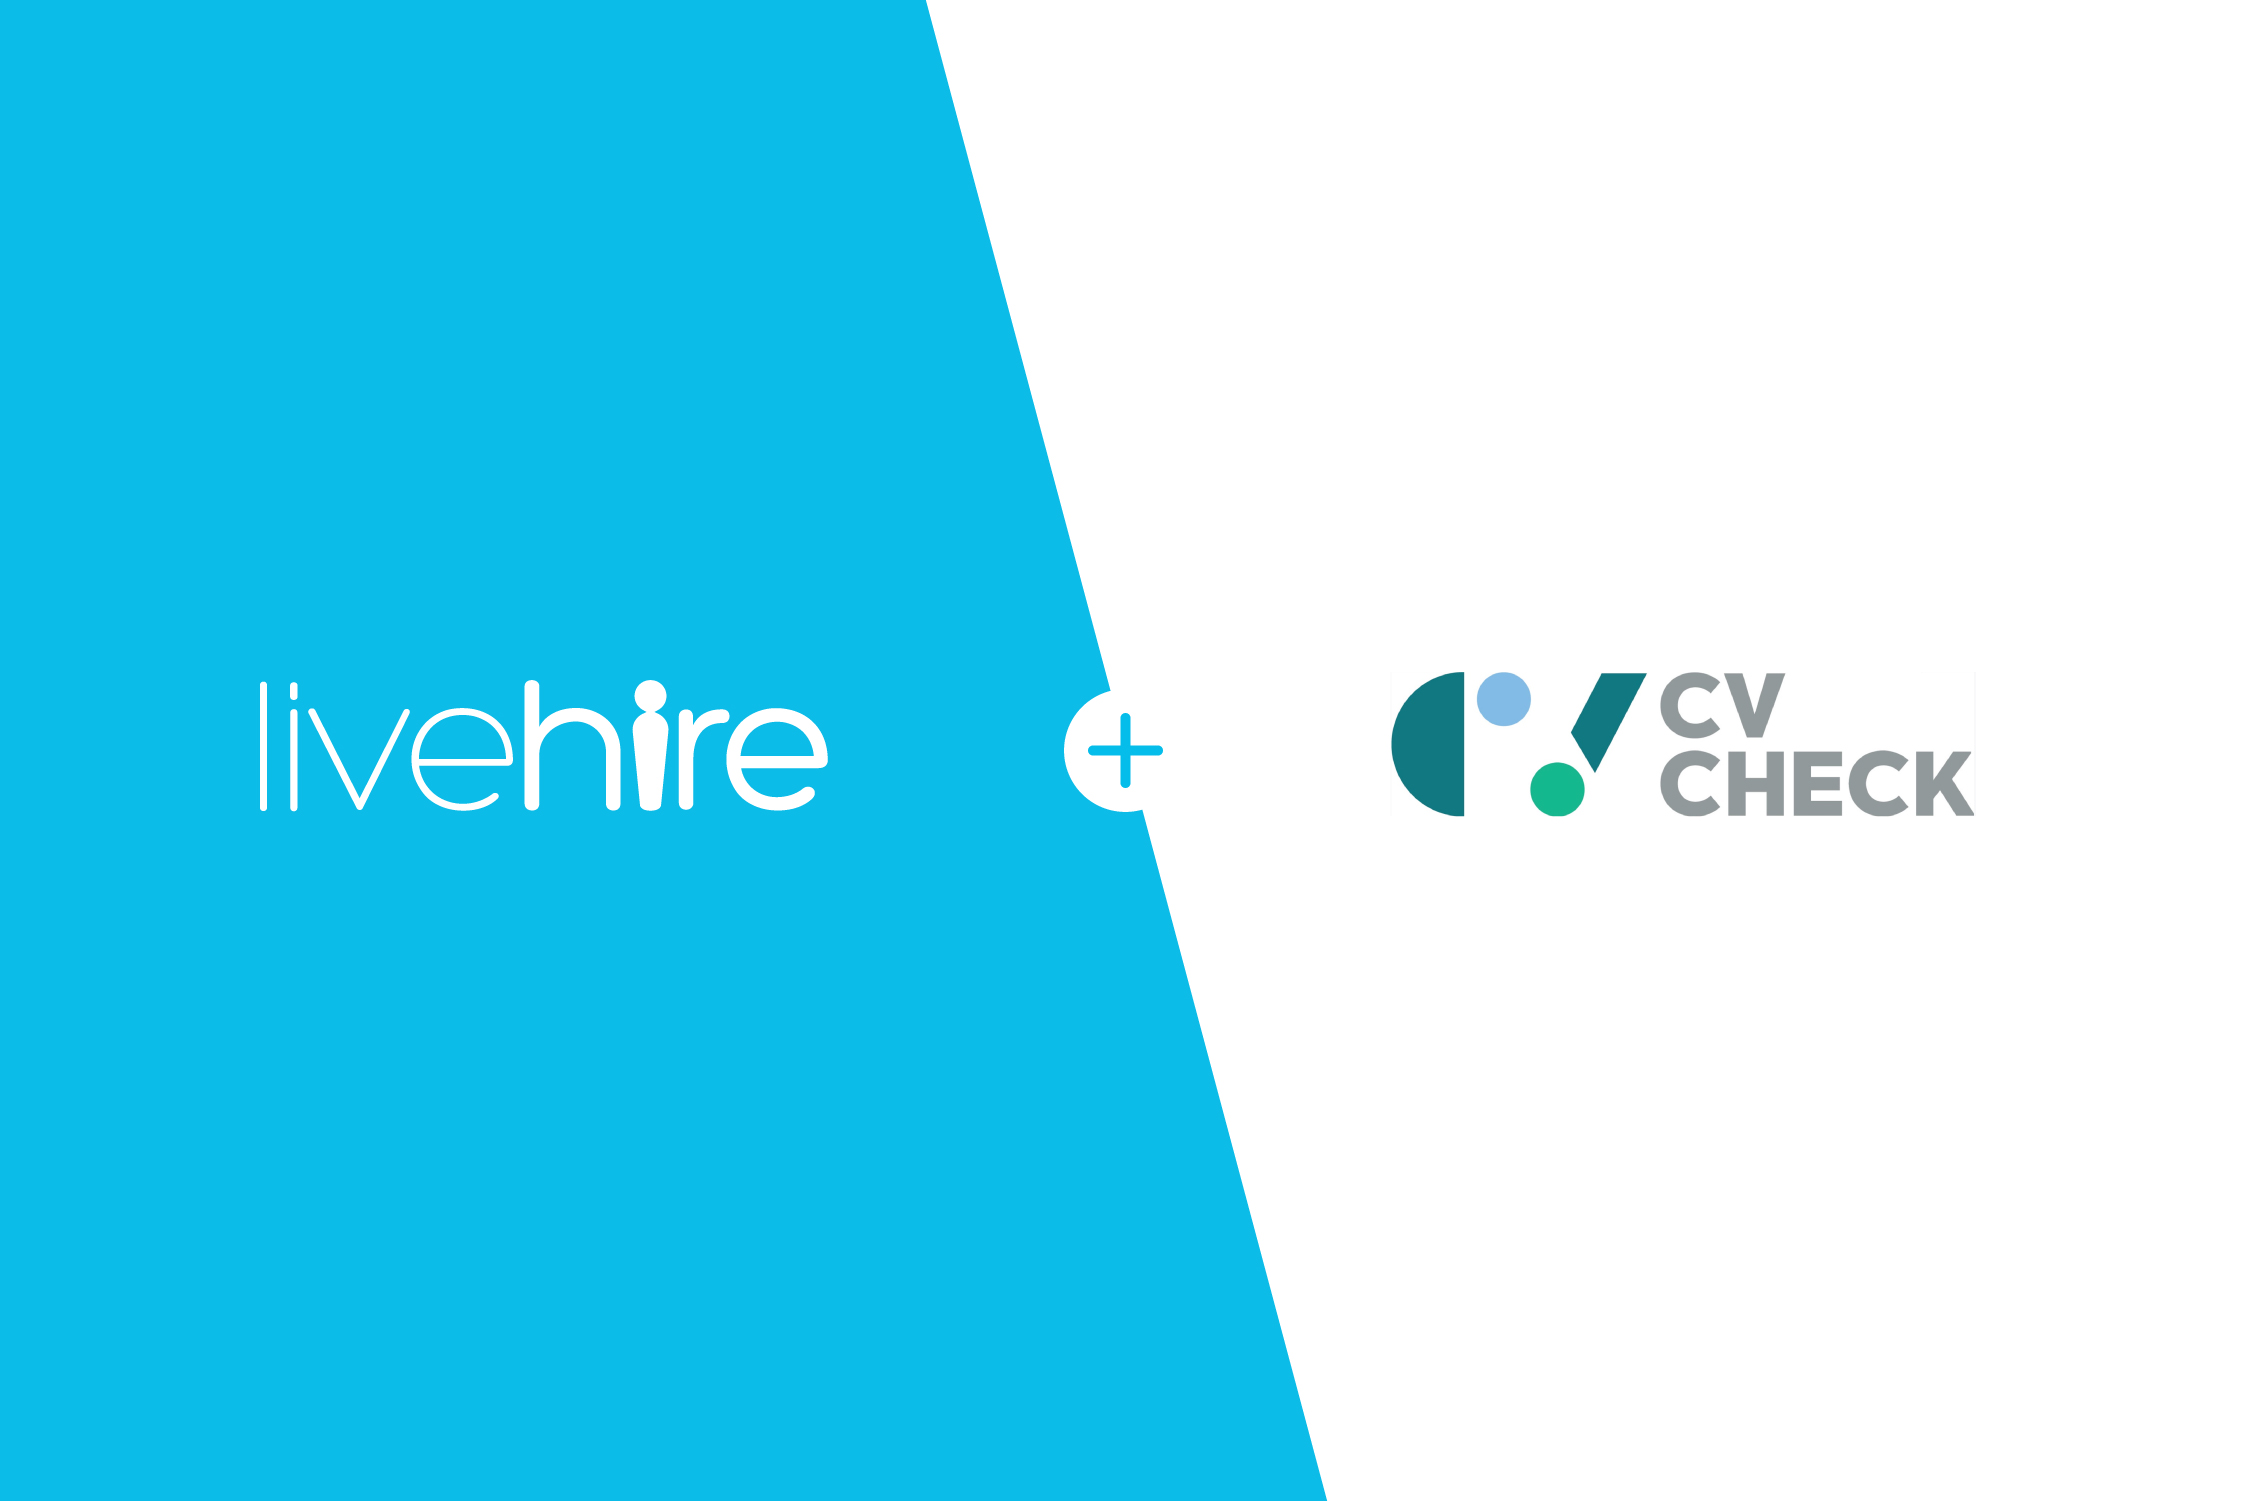 Introducing LiveHire & CVCheck.